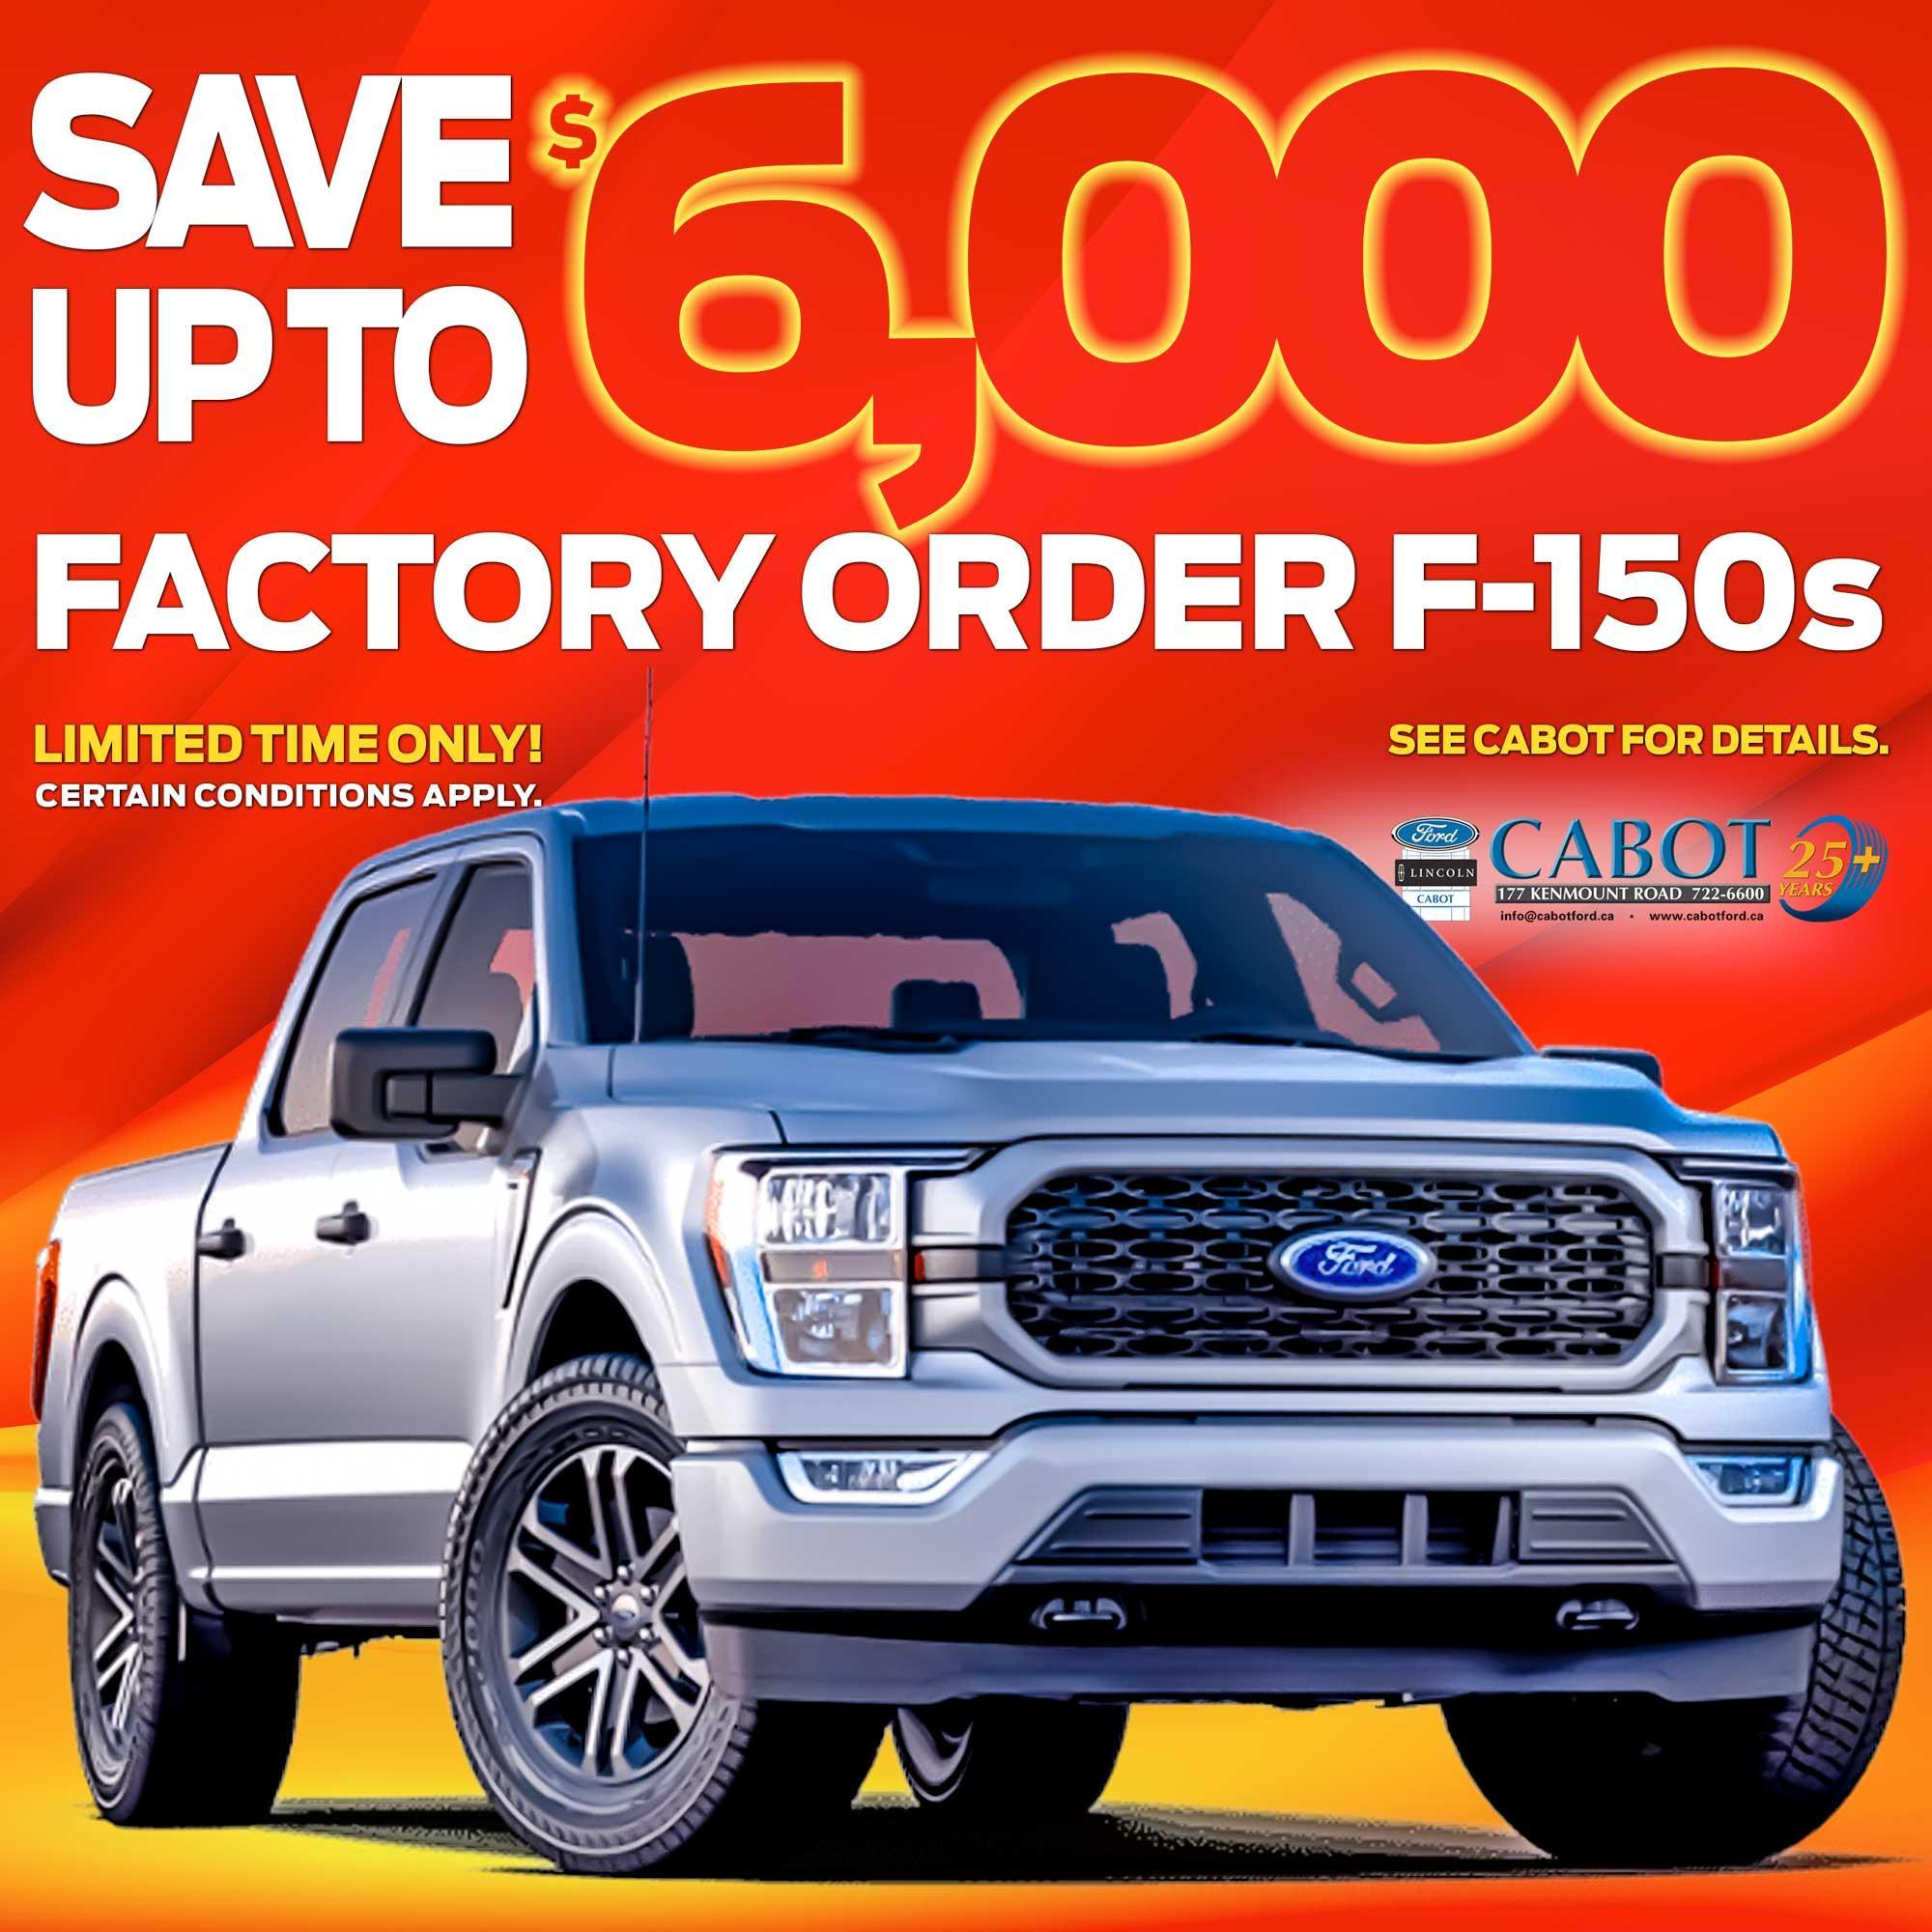 FACTORY ORDER a new 2021 Ford F-150, CUSTOM BUILT to make it perfect for you.